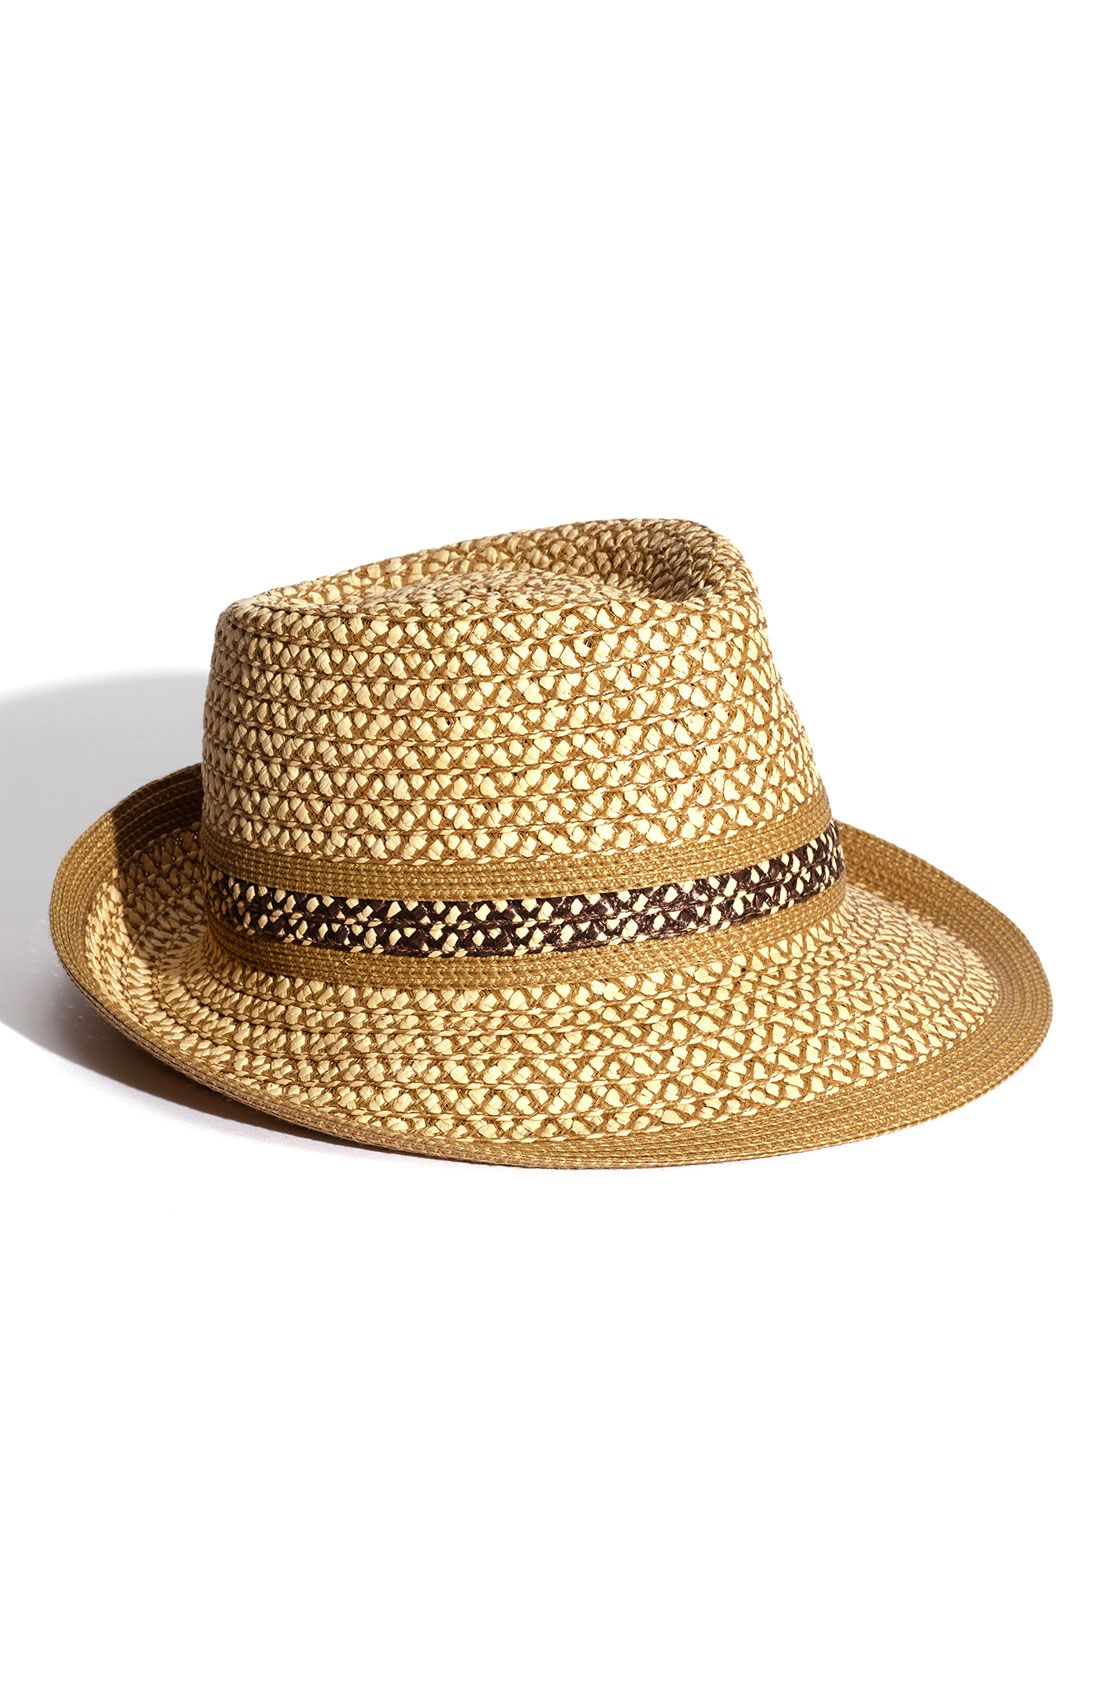 Wearing this cute fedora poolside this summer.  e38295c5827c